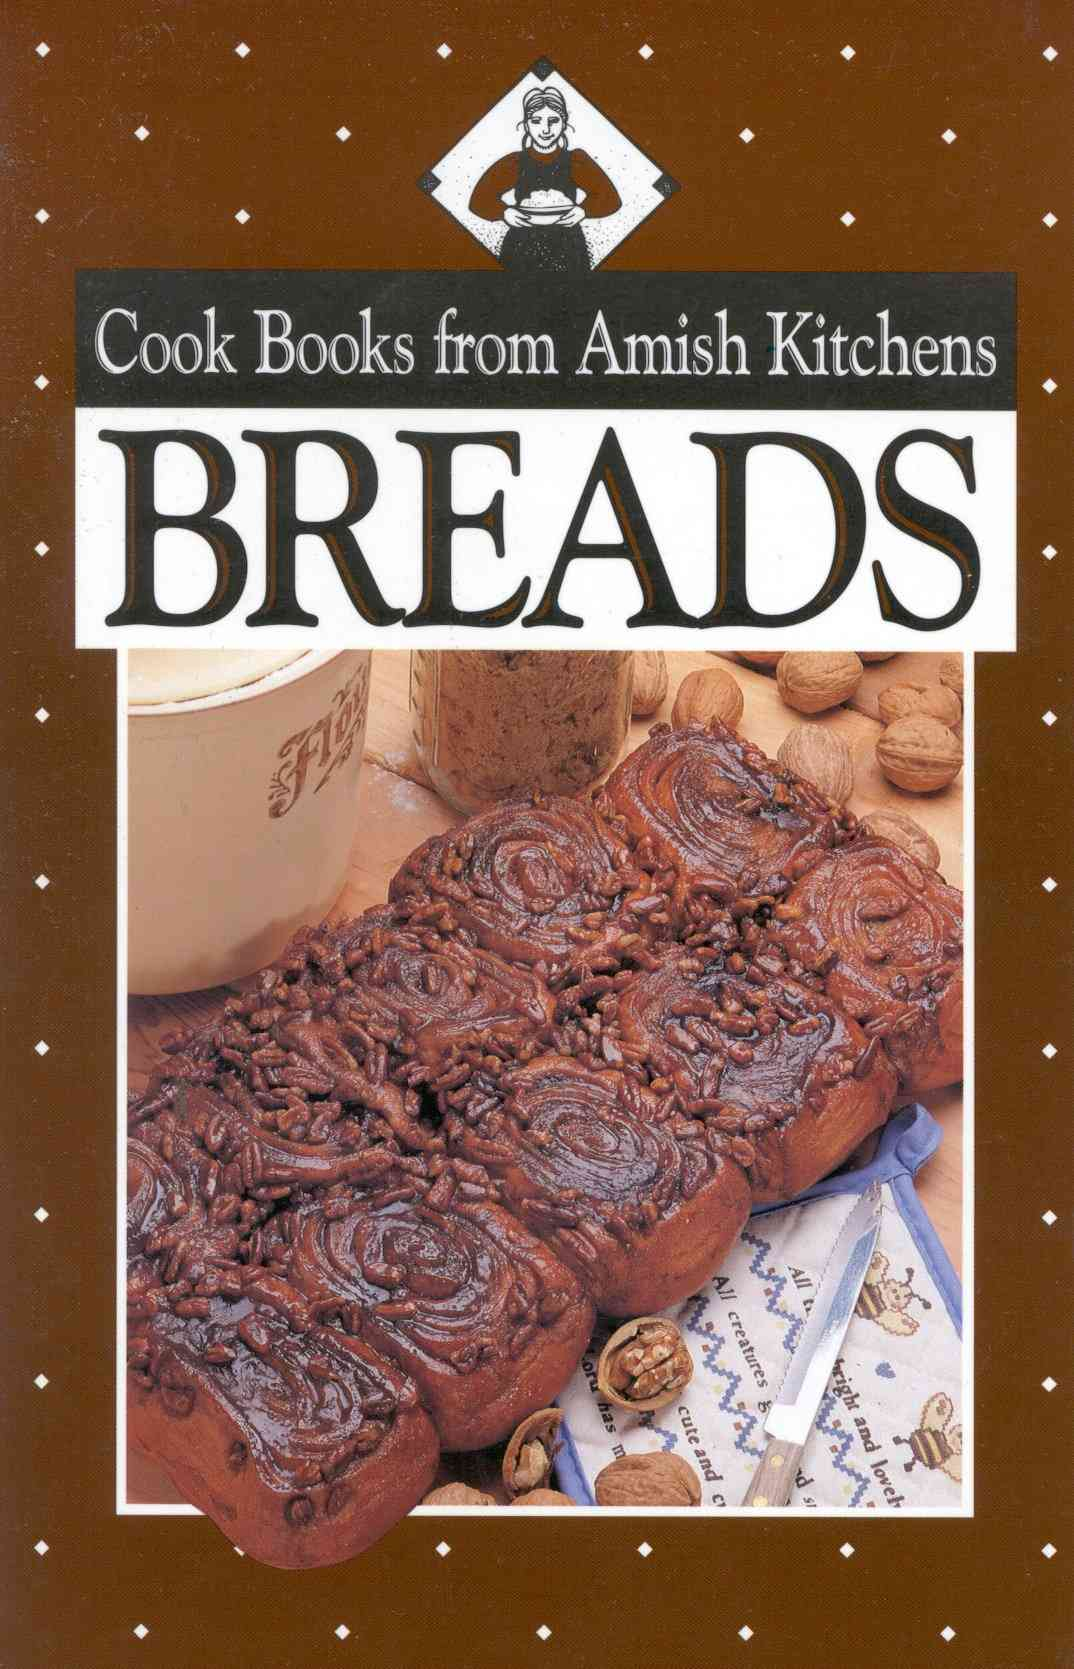 Breads: Cook Books from Amish Kitchens (Paperback) - Thumbnail 0